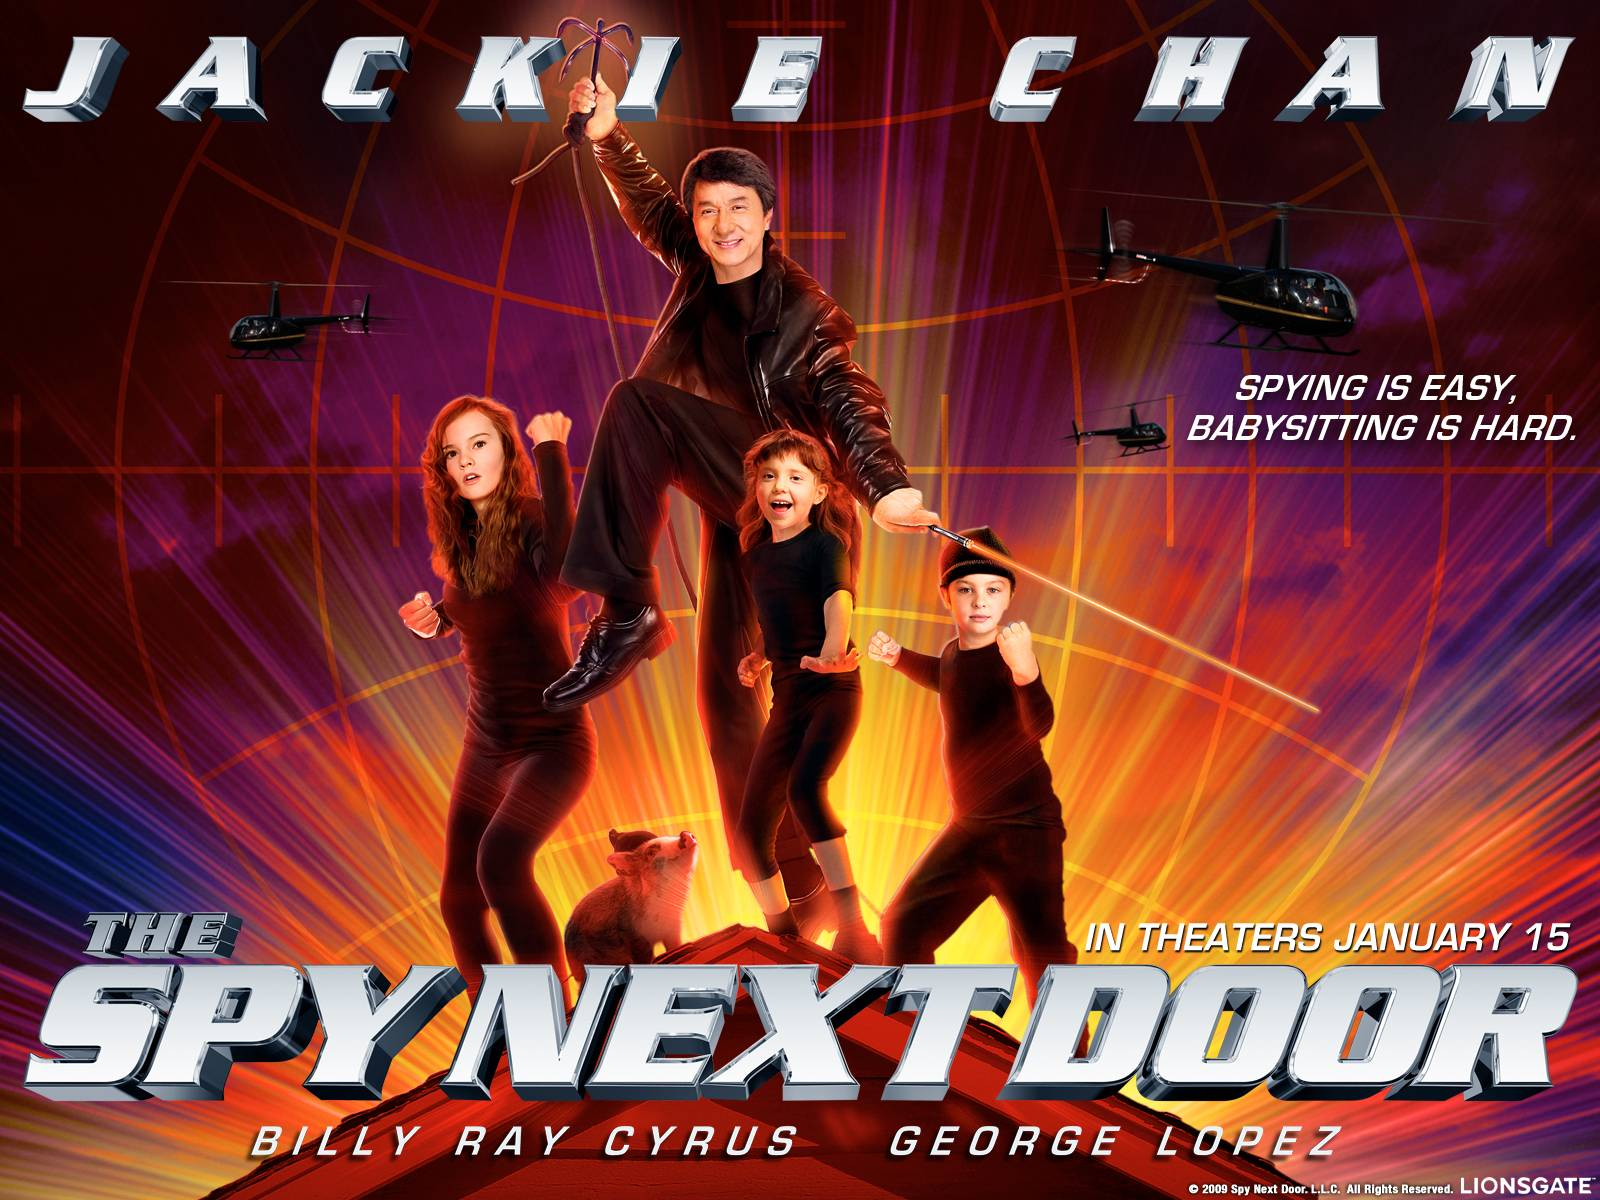 The spy next door 2010 400mb mediafire link download free movies